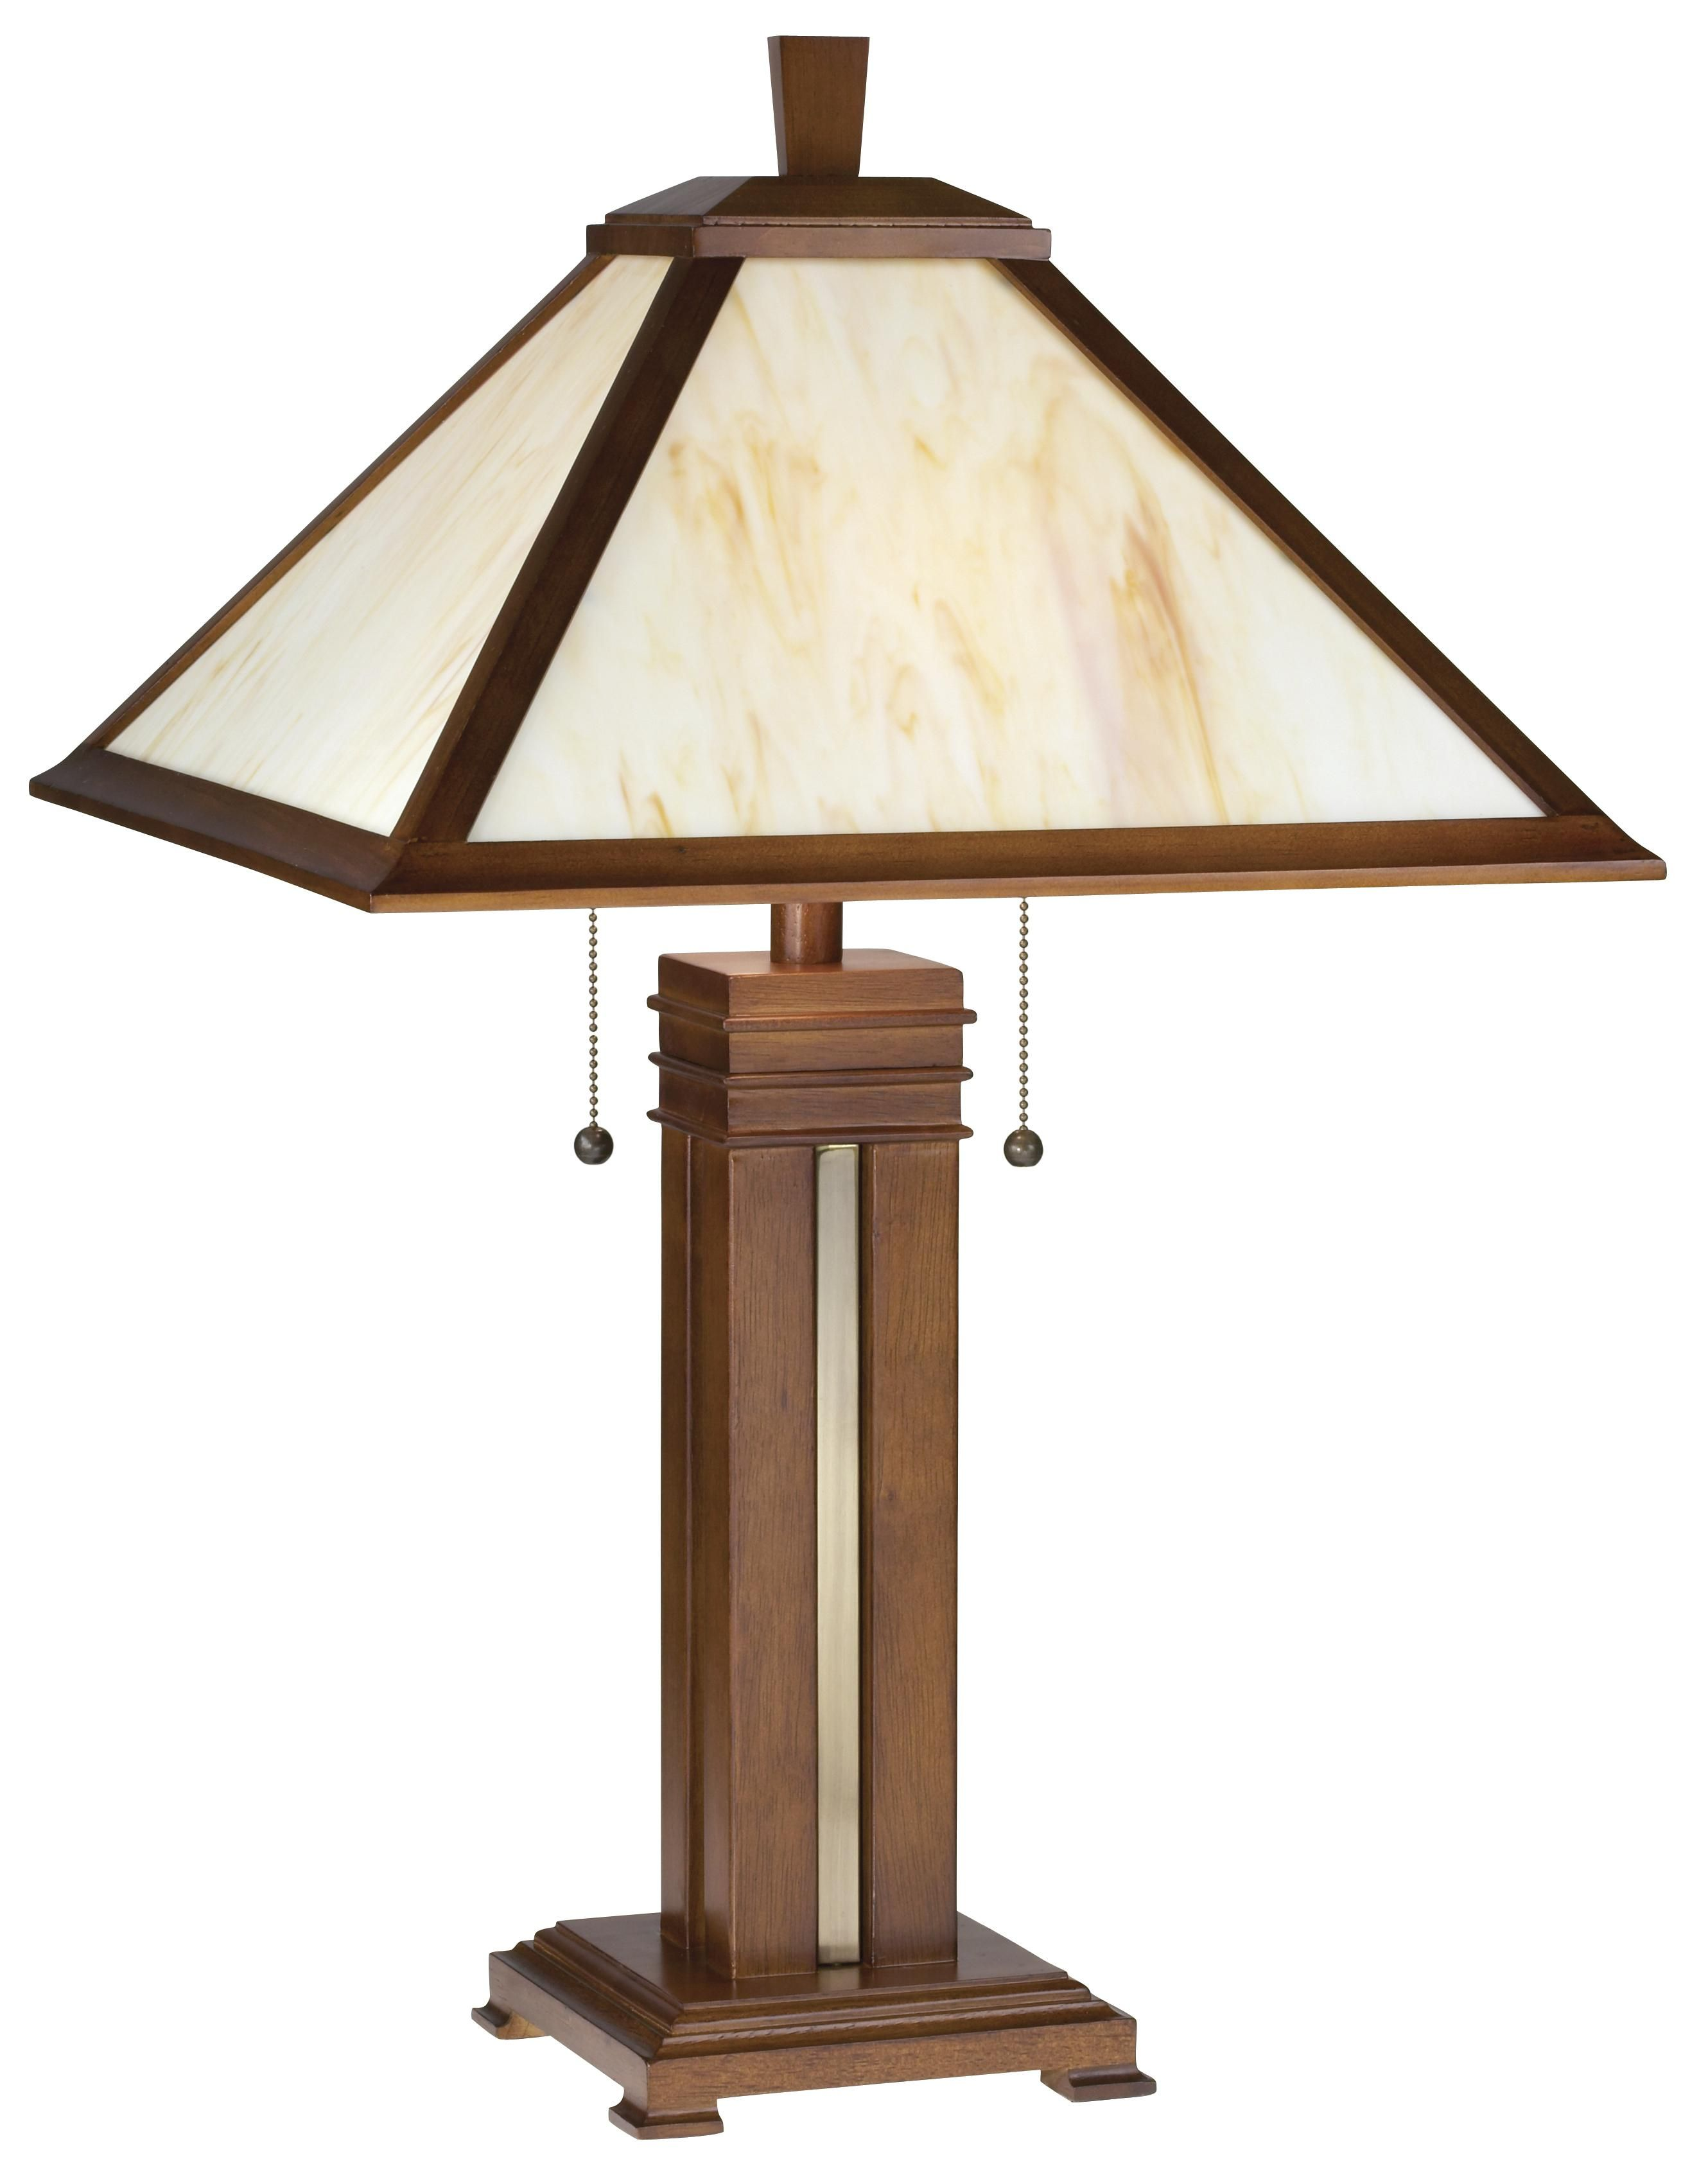 Prairie Style With Honey Glass Table Lamp 42014 Lamps Plus Craftsman Style Table Prairie Style Lamp Glass Table Lamp